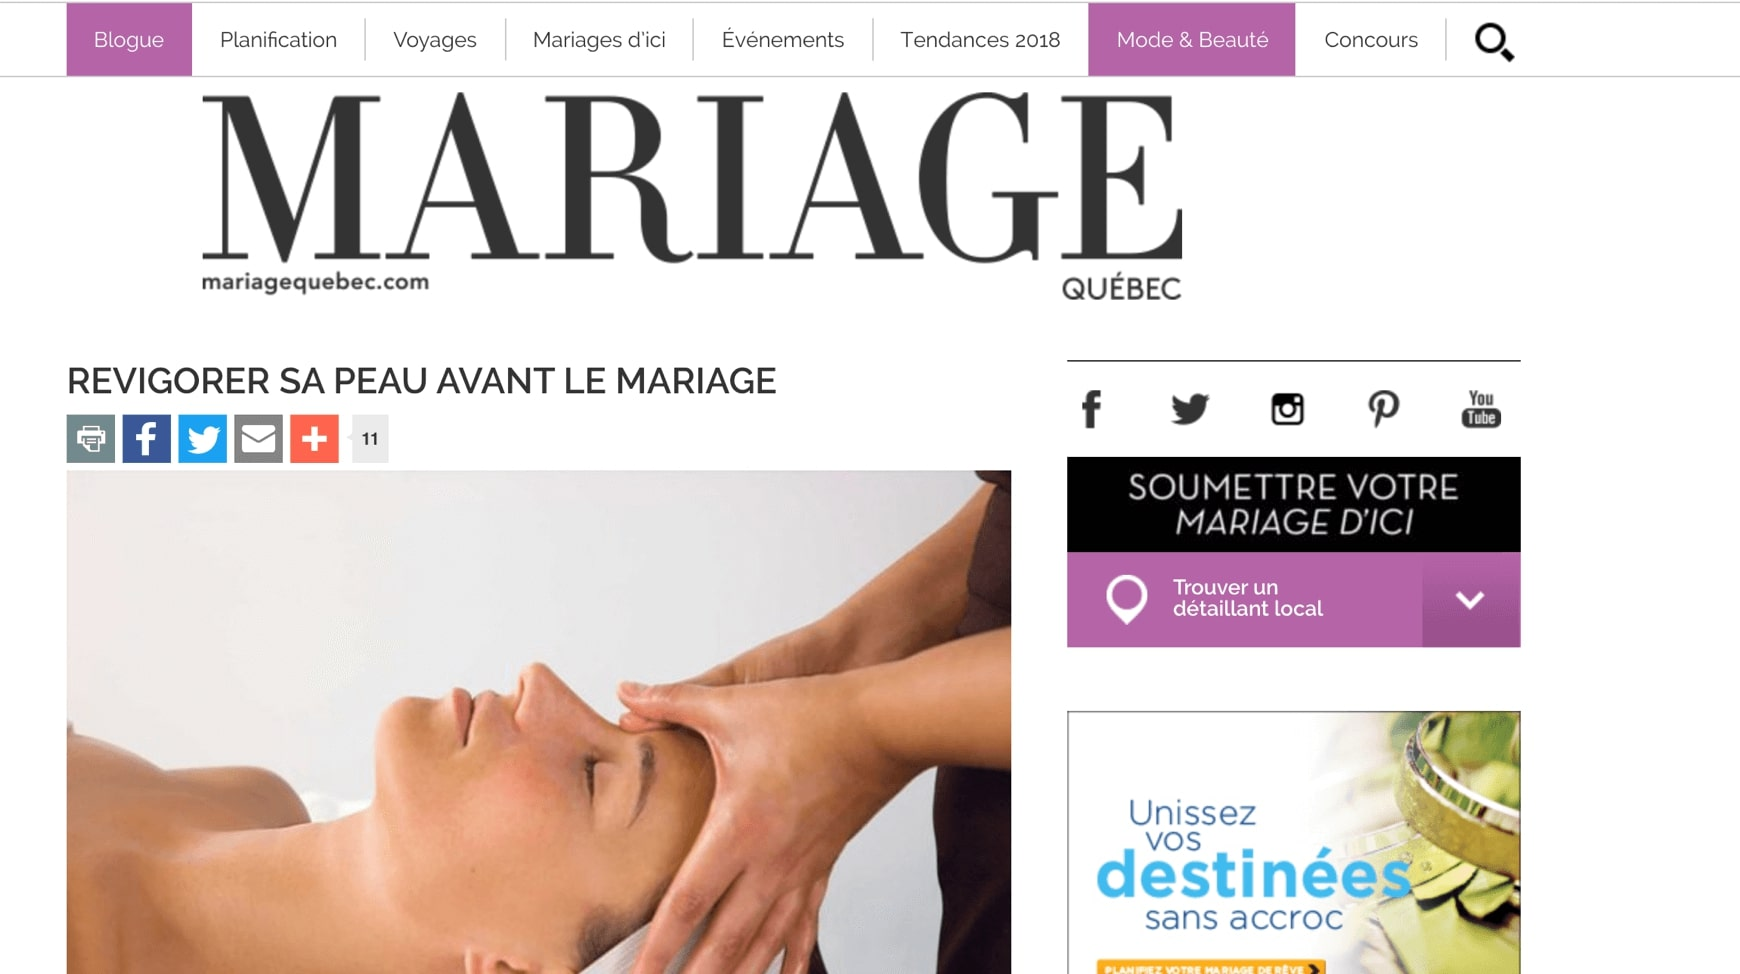 2e2311c3e Dr. Chloe Sylvestre talks aesthetic products in Mariage Quebec